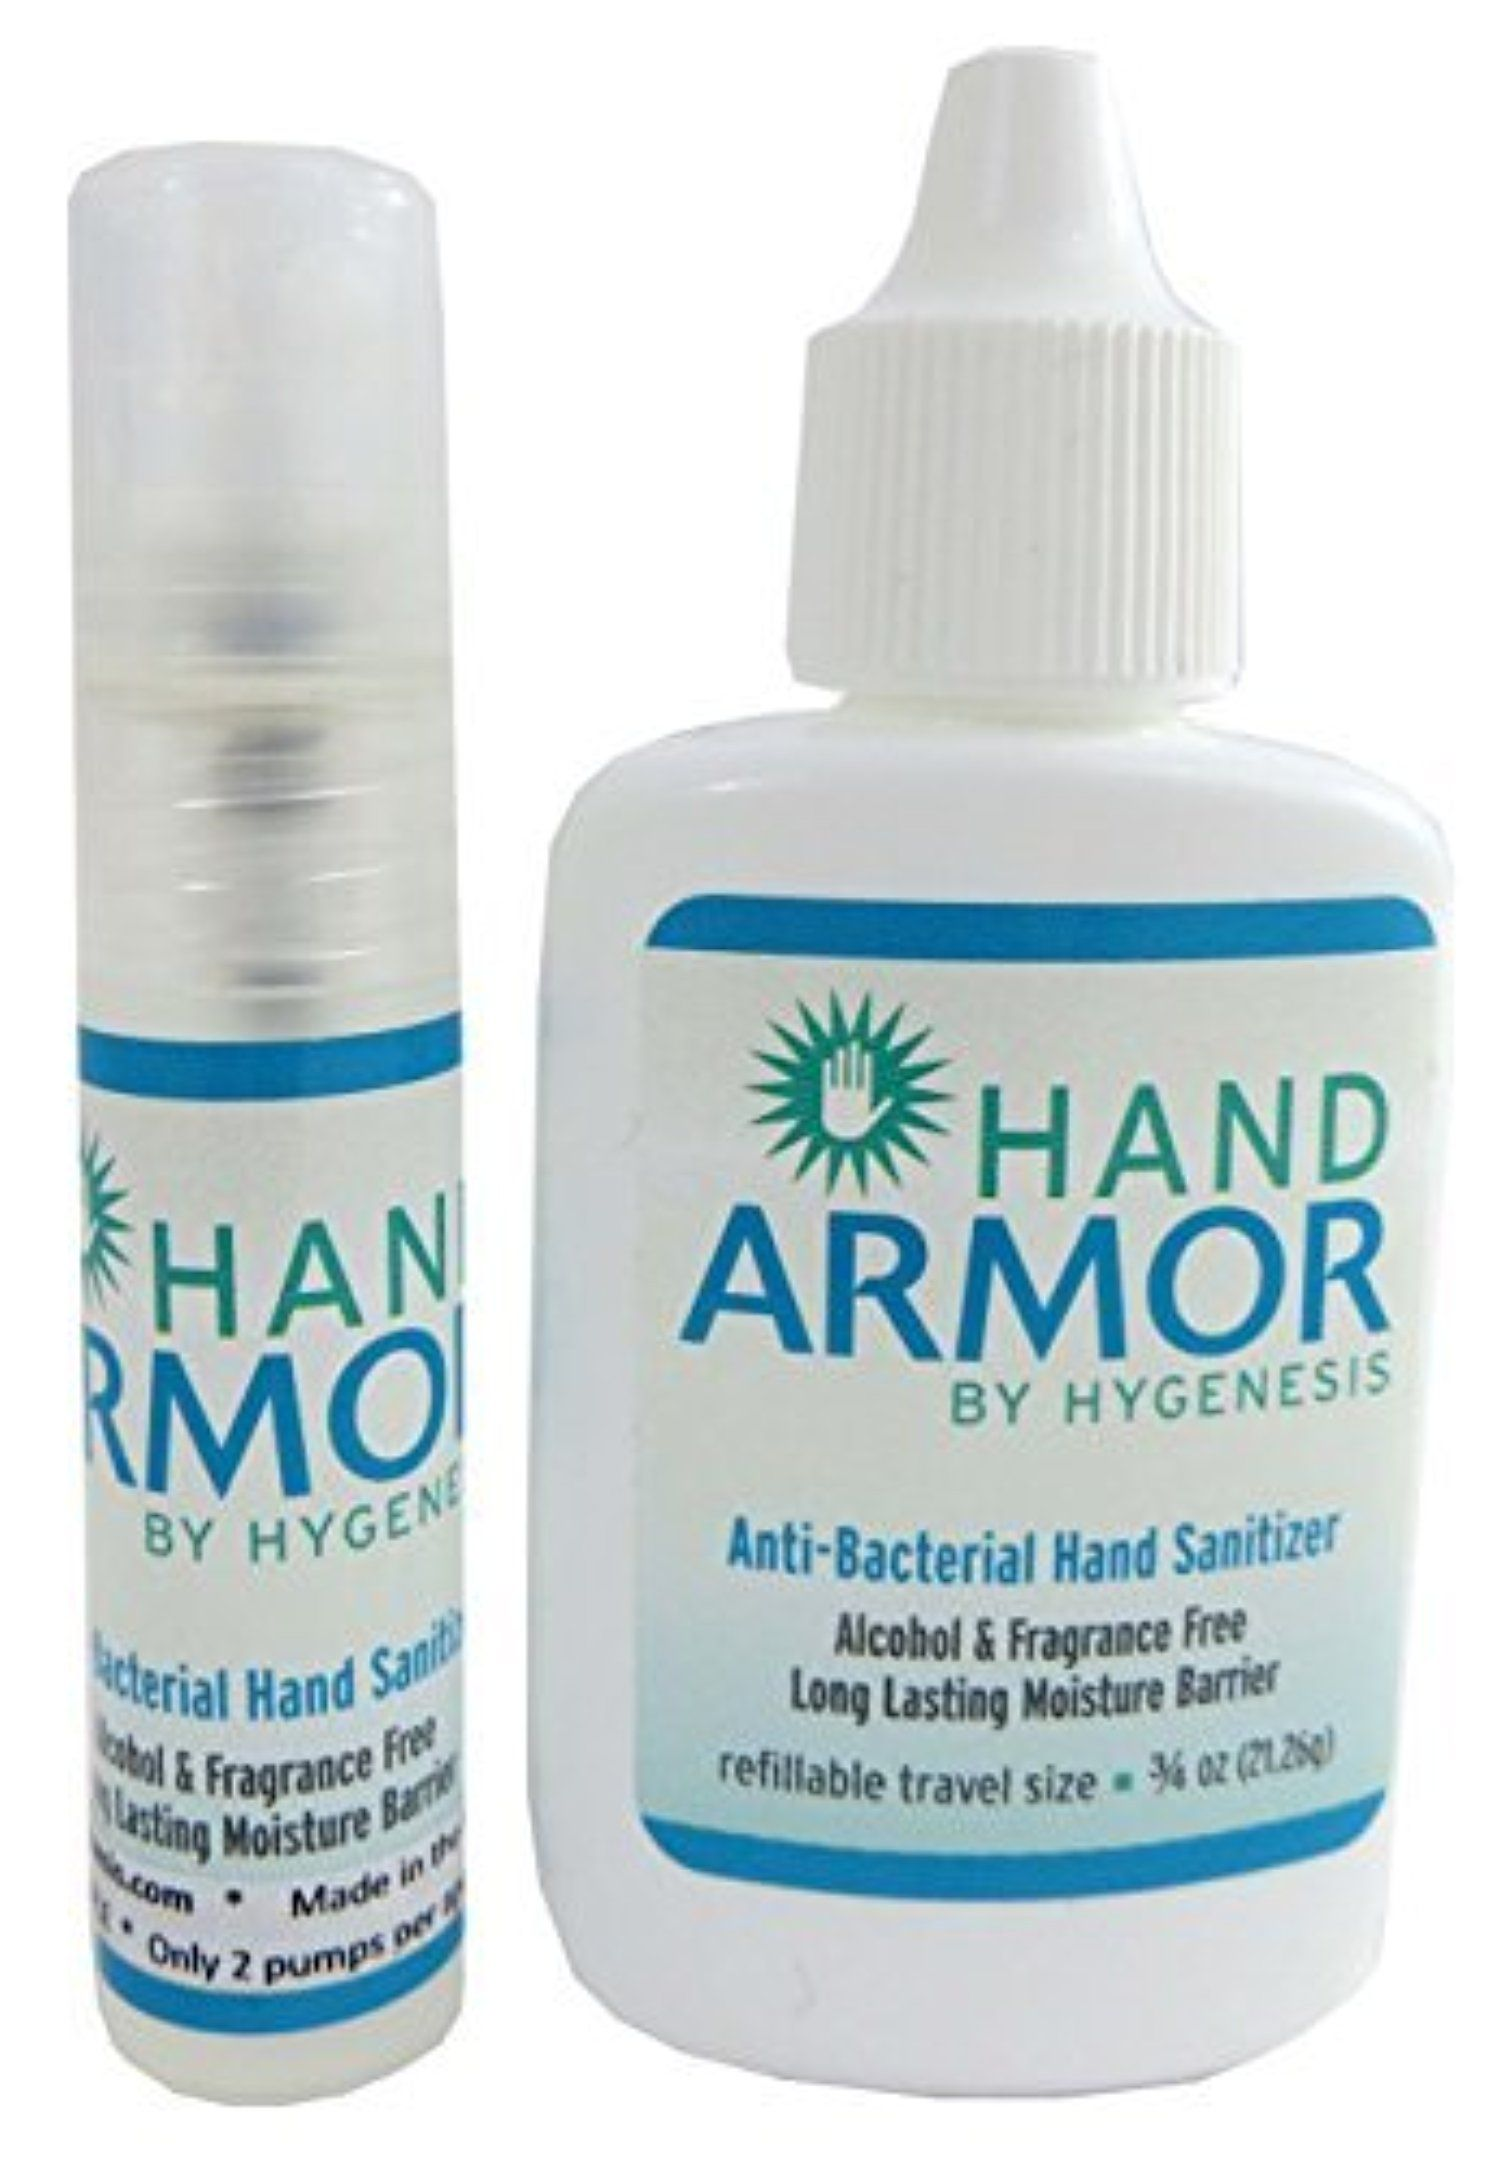 Hygenesis Hand Armor Anti Bacterial Hand Sanitizer Pocket Size